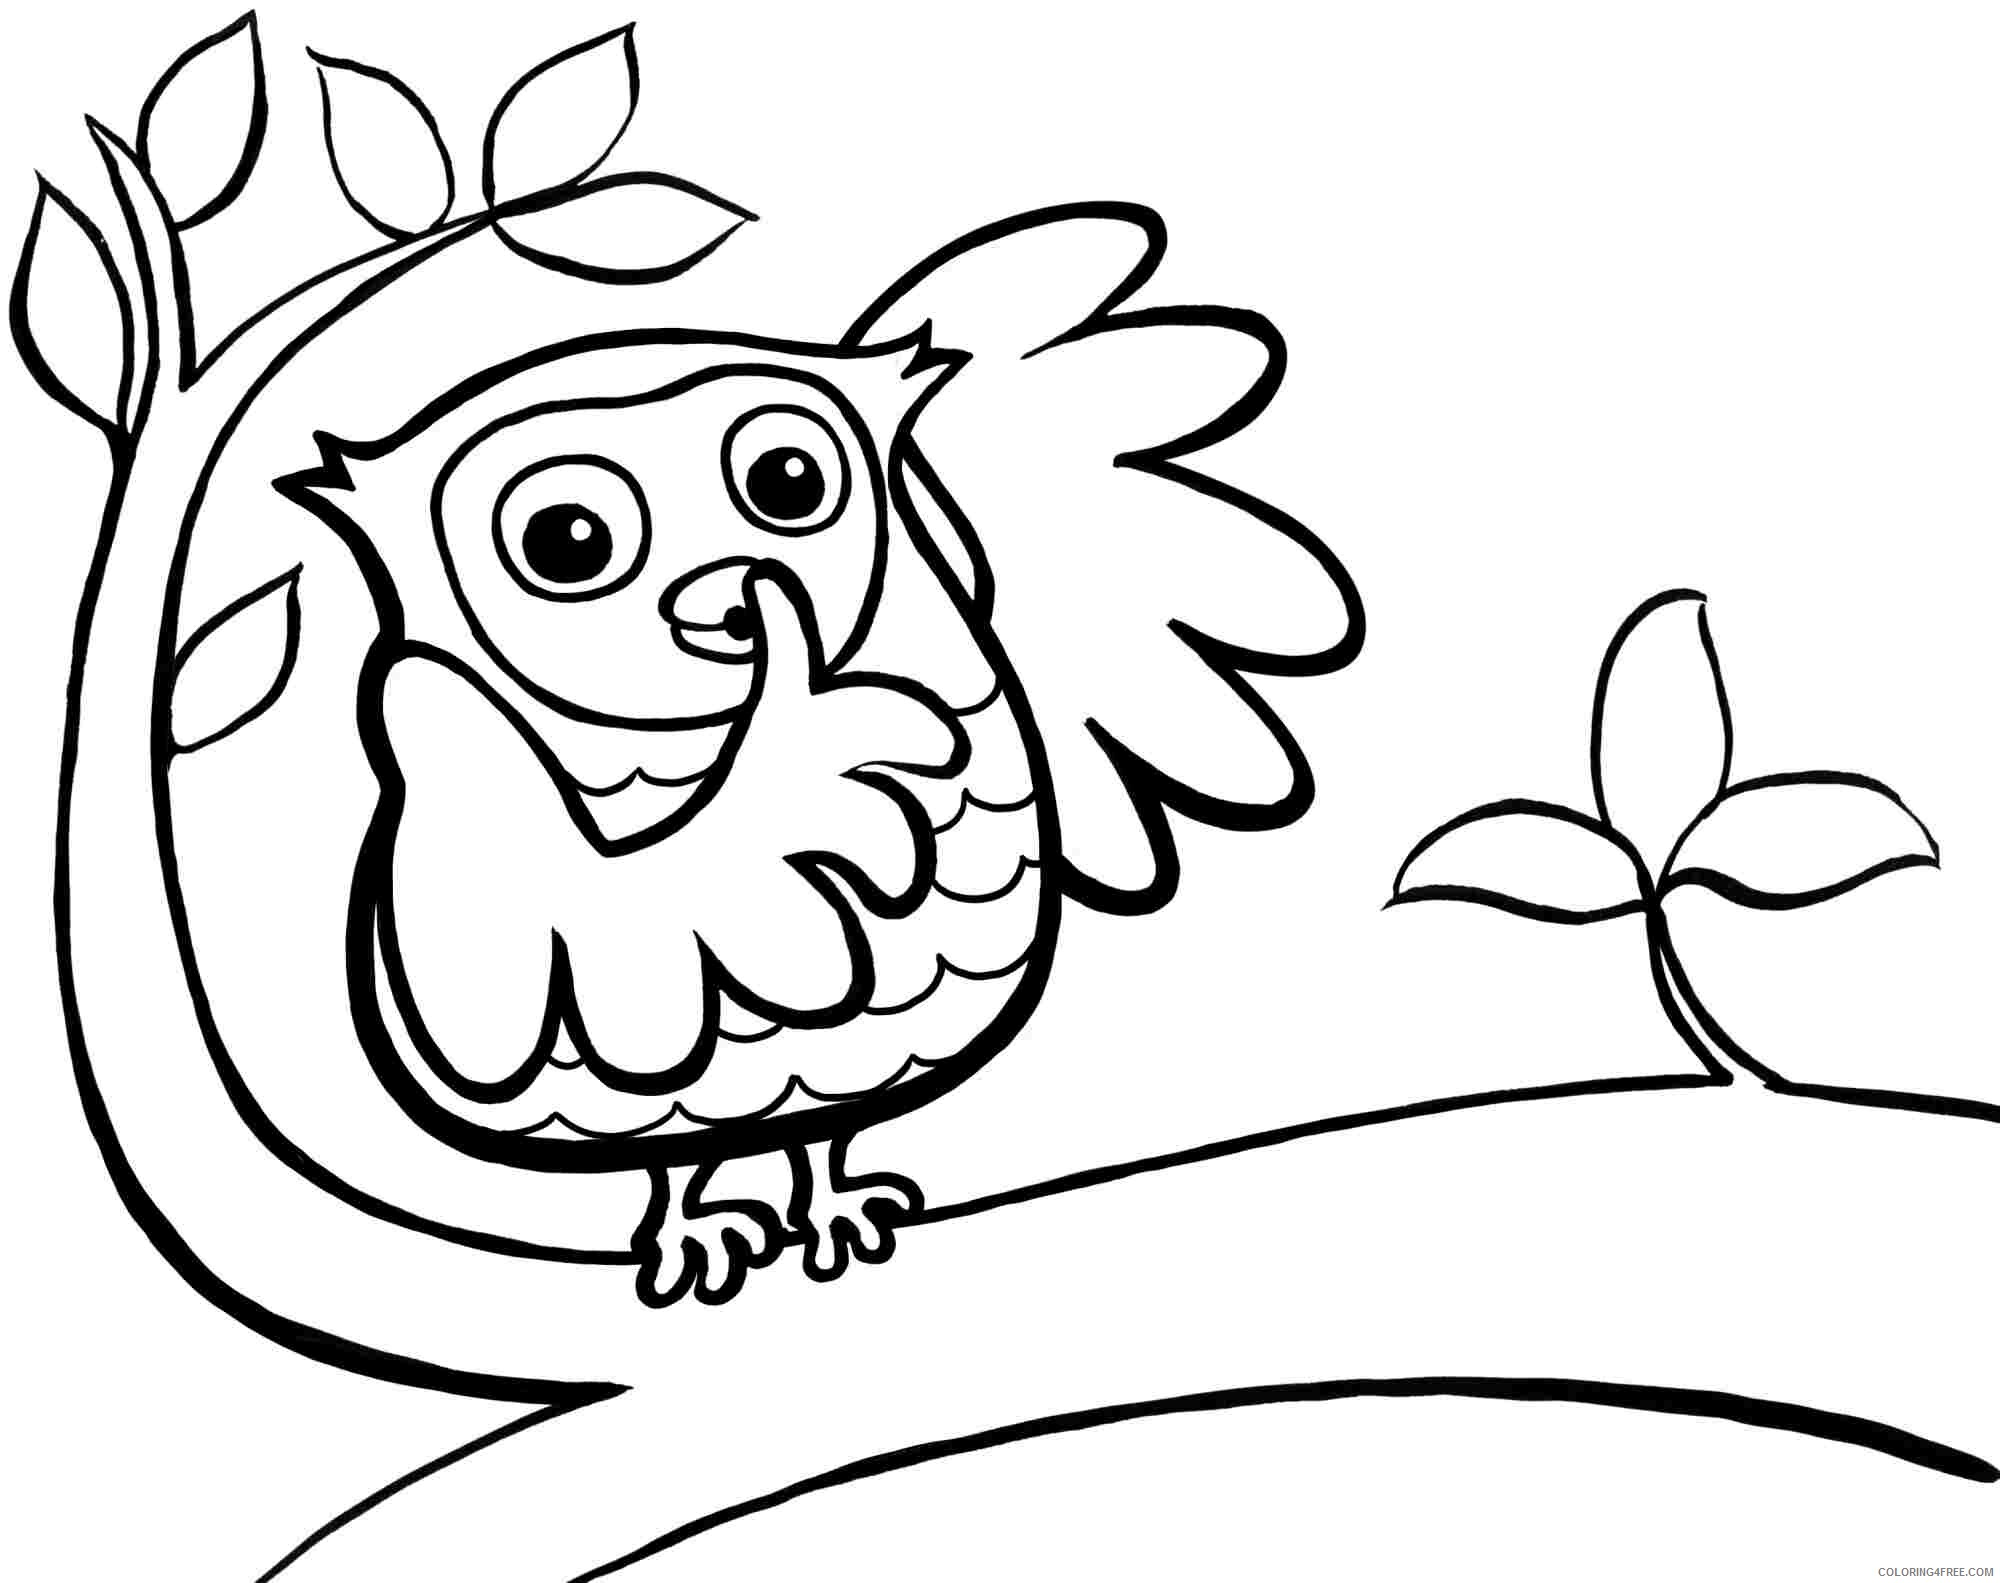 Owl Coloring Pages Animal Printable Sheets Owl for Toddlers 2021 3645 Coloring4free